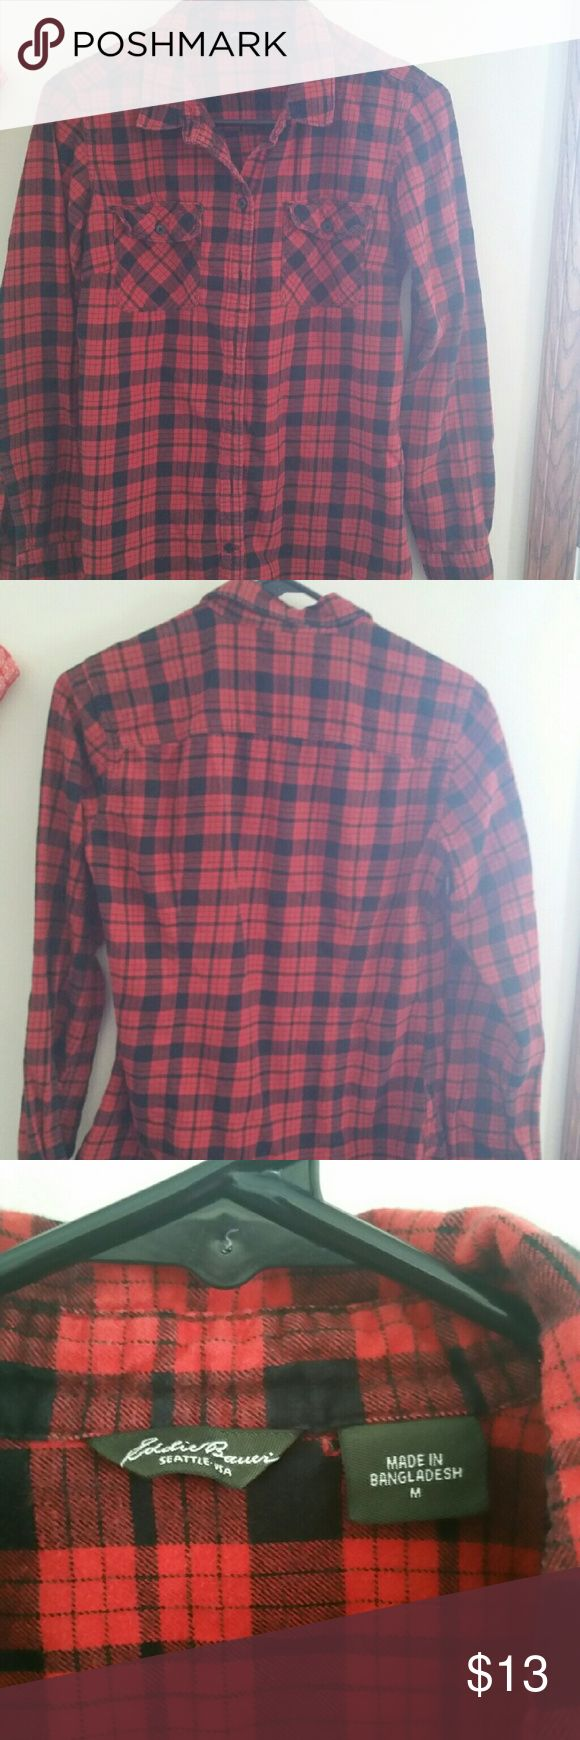 Eddie Bauer Women's Flannel Shirt Size M Red Black This is a gently worn flannel shirt from Eddie Bauer. It is a size Medium. It is red and black plaid and buttons up. There is no damage to the top. It is very clean and comes from a smoke free home. The top is 100% cotton. Thanks for looking! Eddie Bauer Tops Button Down Shirts